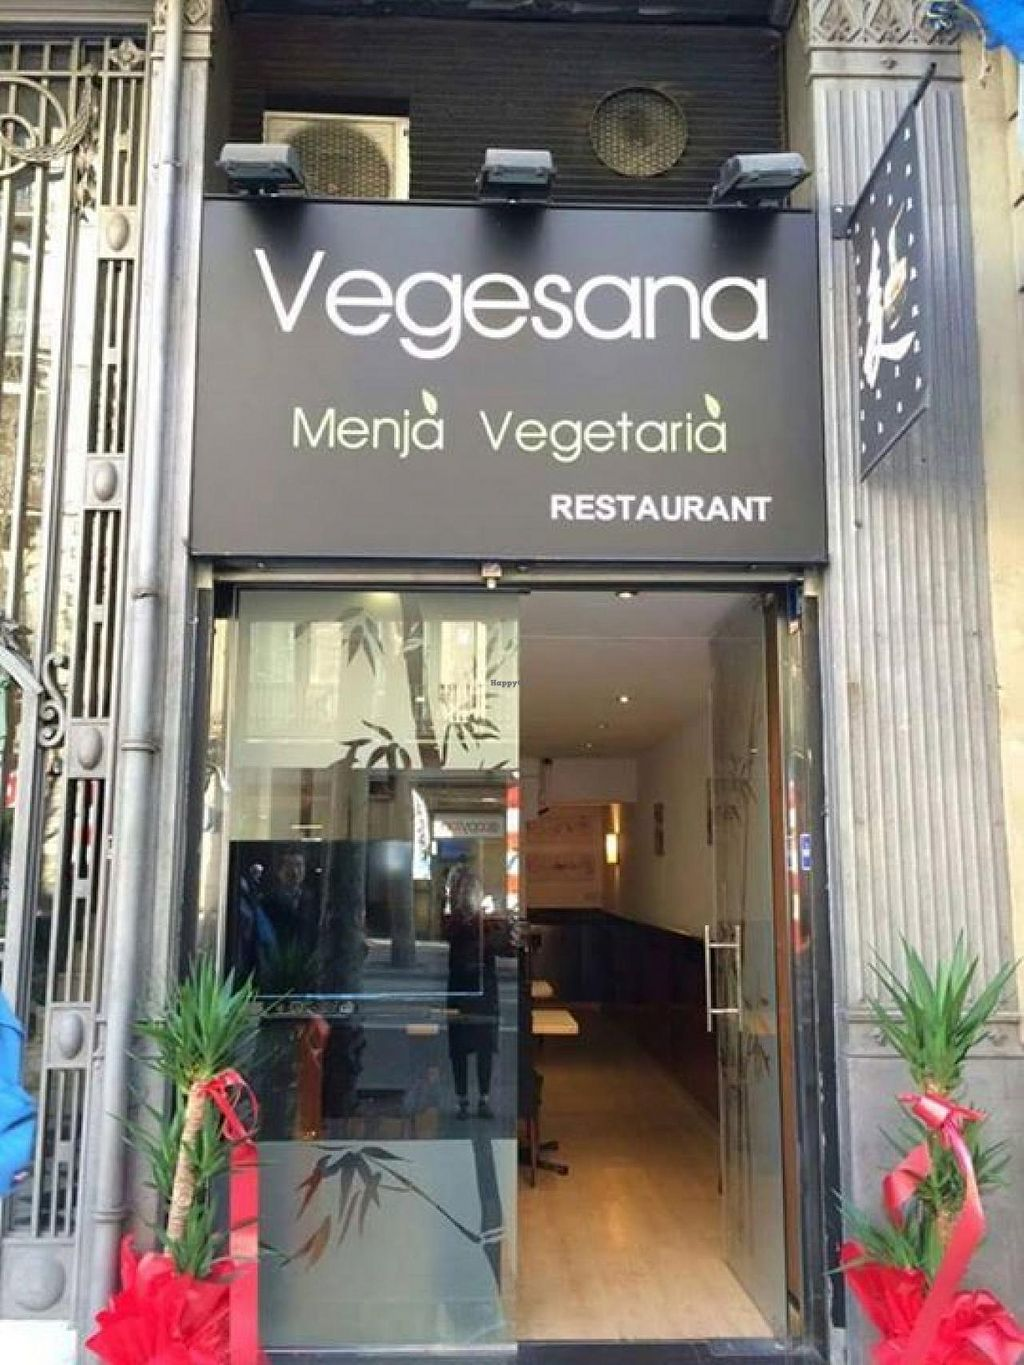 """Photo of Vegesana  by <a href=""""/members/profile/community"""">community</a> <br/>Vegesana <br/> April 24, 2015  - <a href='/contact/abuse/image/57731/100124'>Report</a>"""